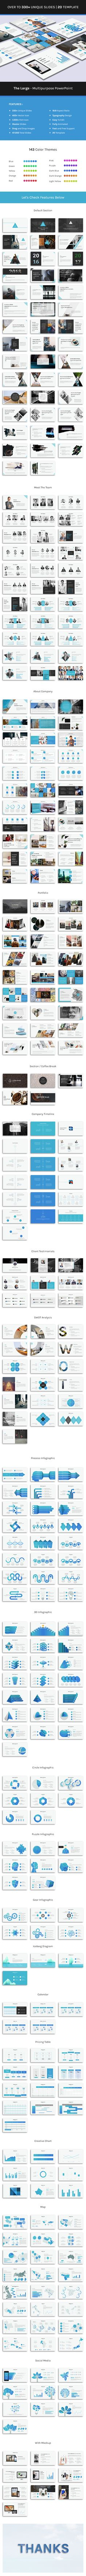 The Large - Multipurpose PowerPoint Template